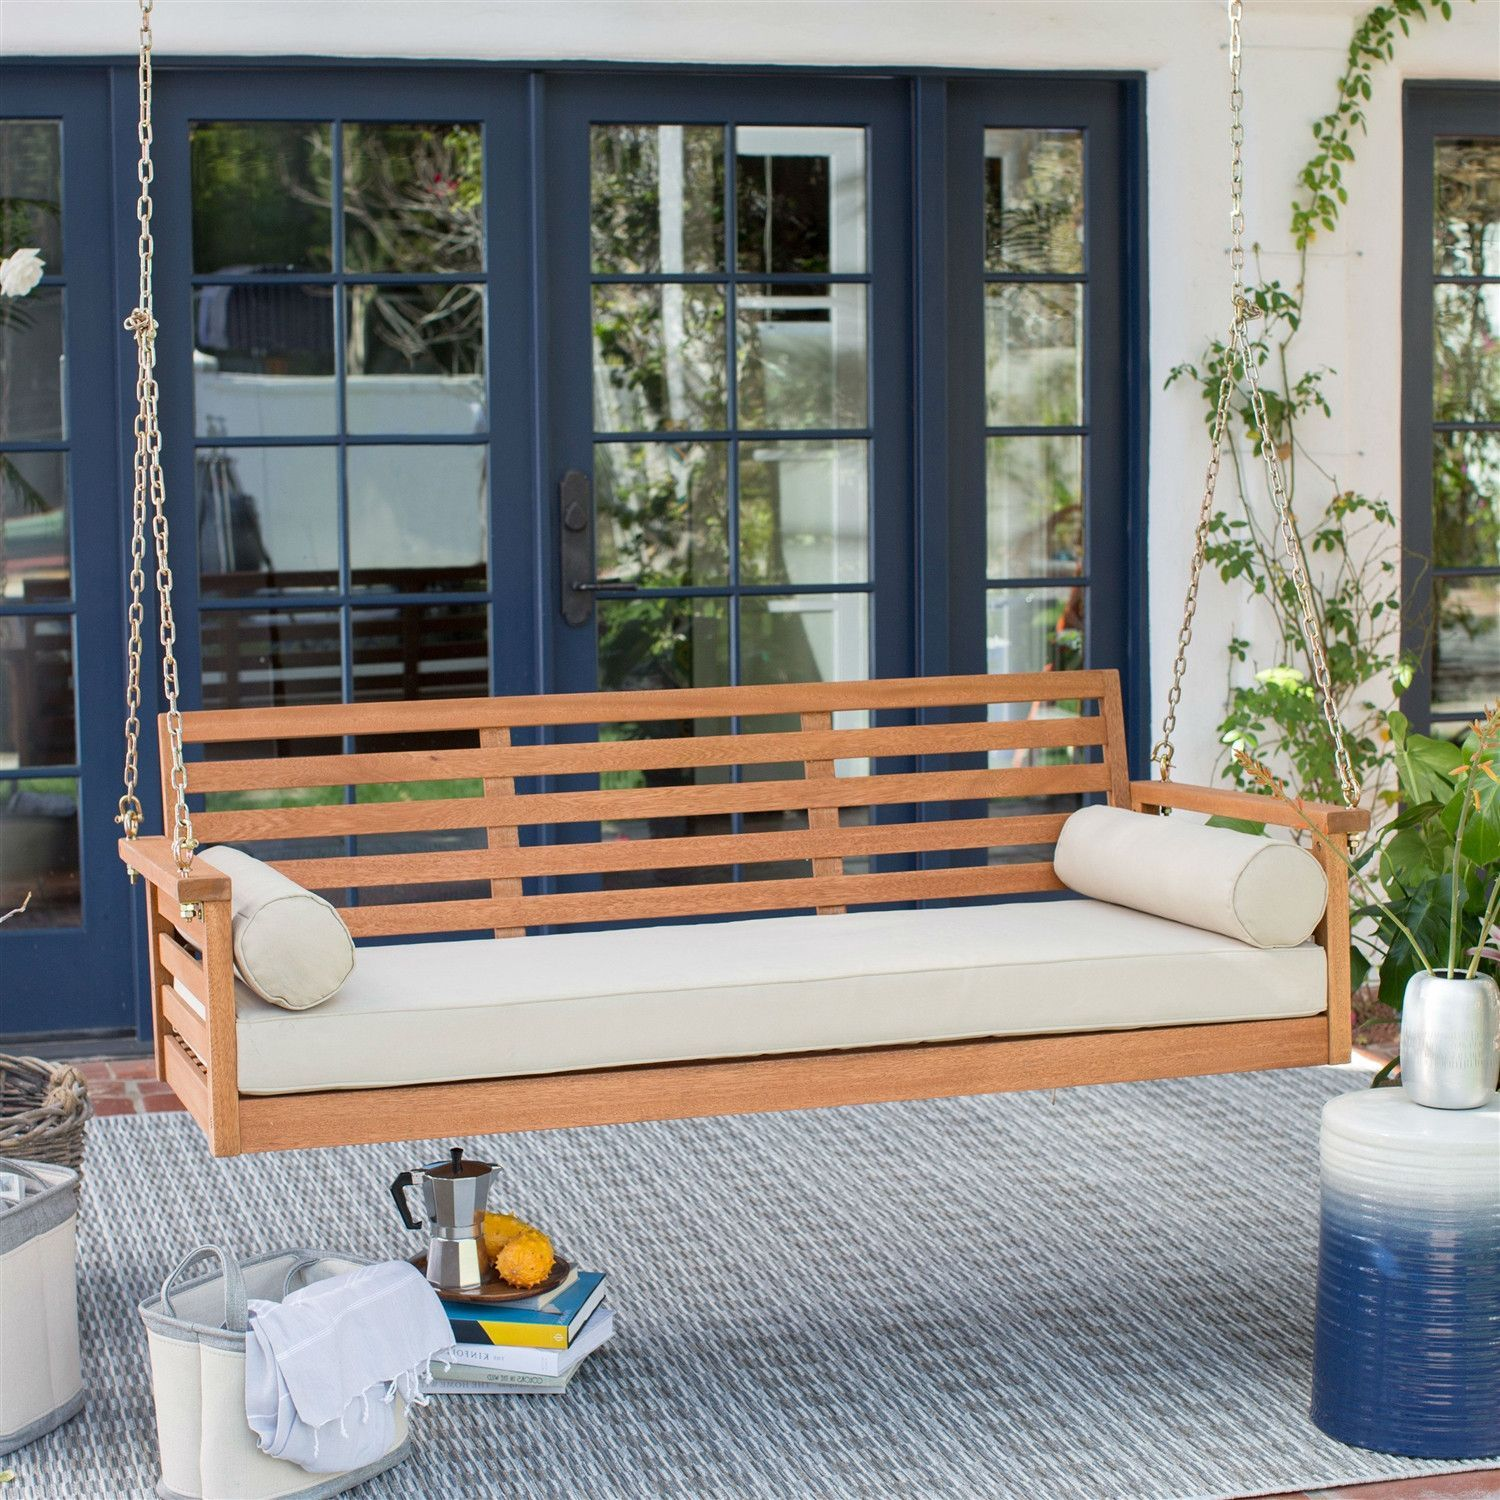 Deep Seat Wood Porch Swing Outdoor Bed With Cushion 2 Bolster Pillows Porch Swing Front Porch Seating Backyard Seating